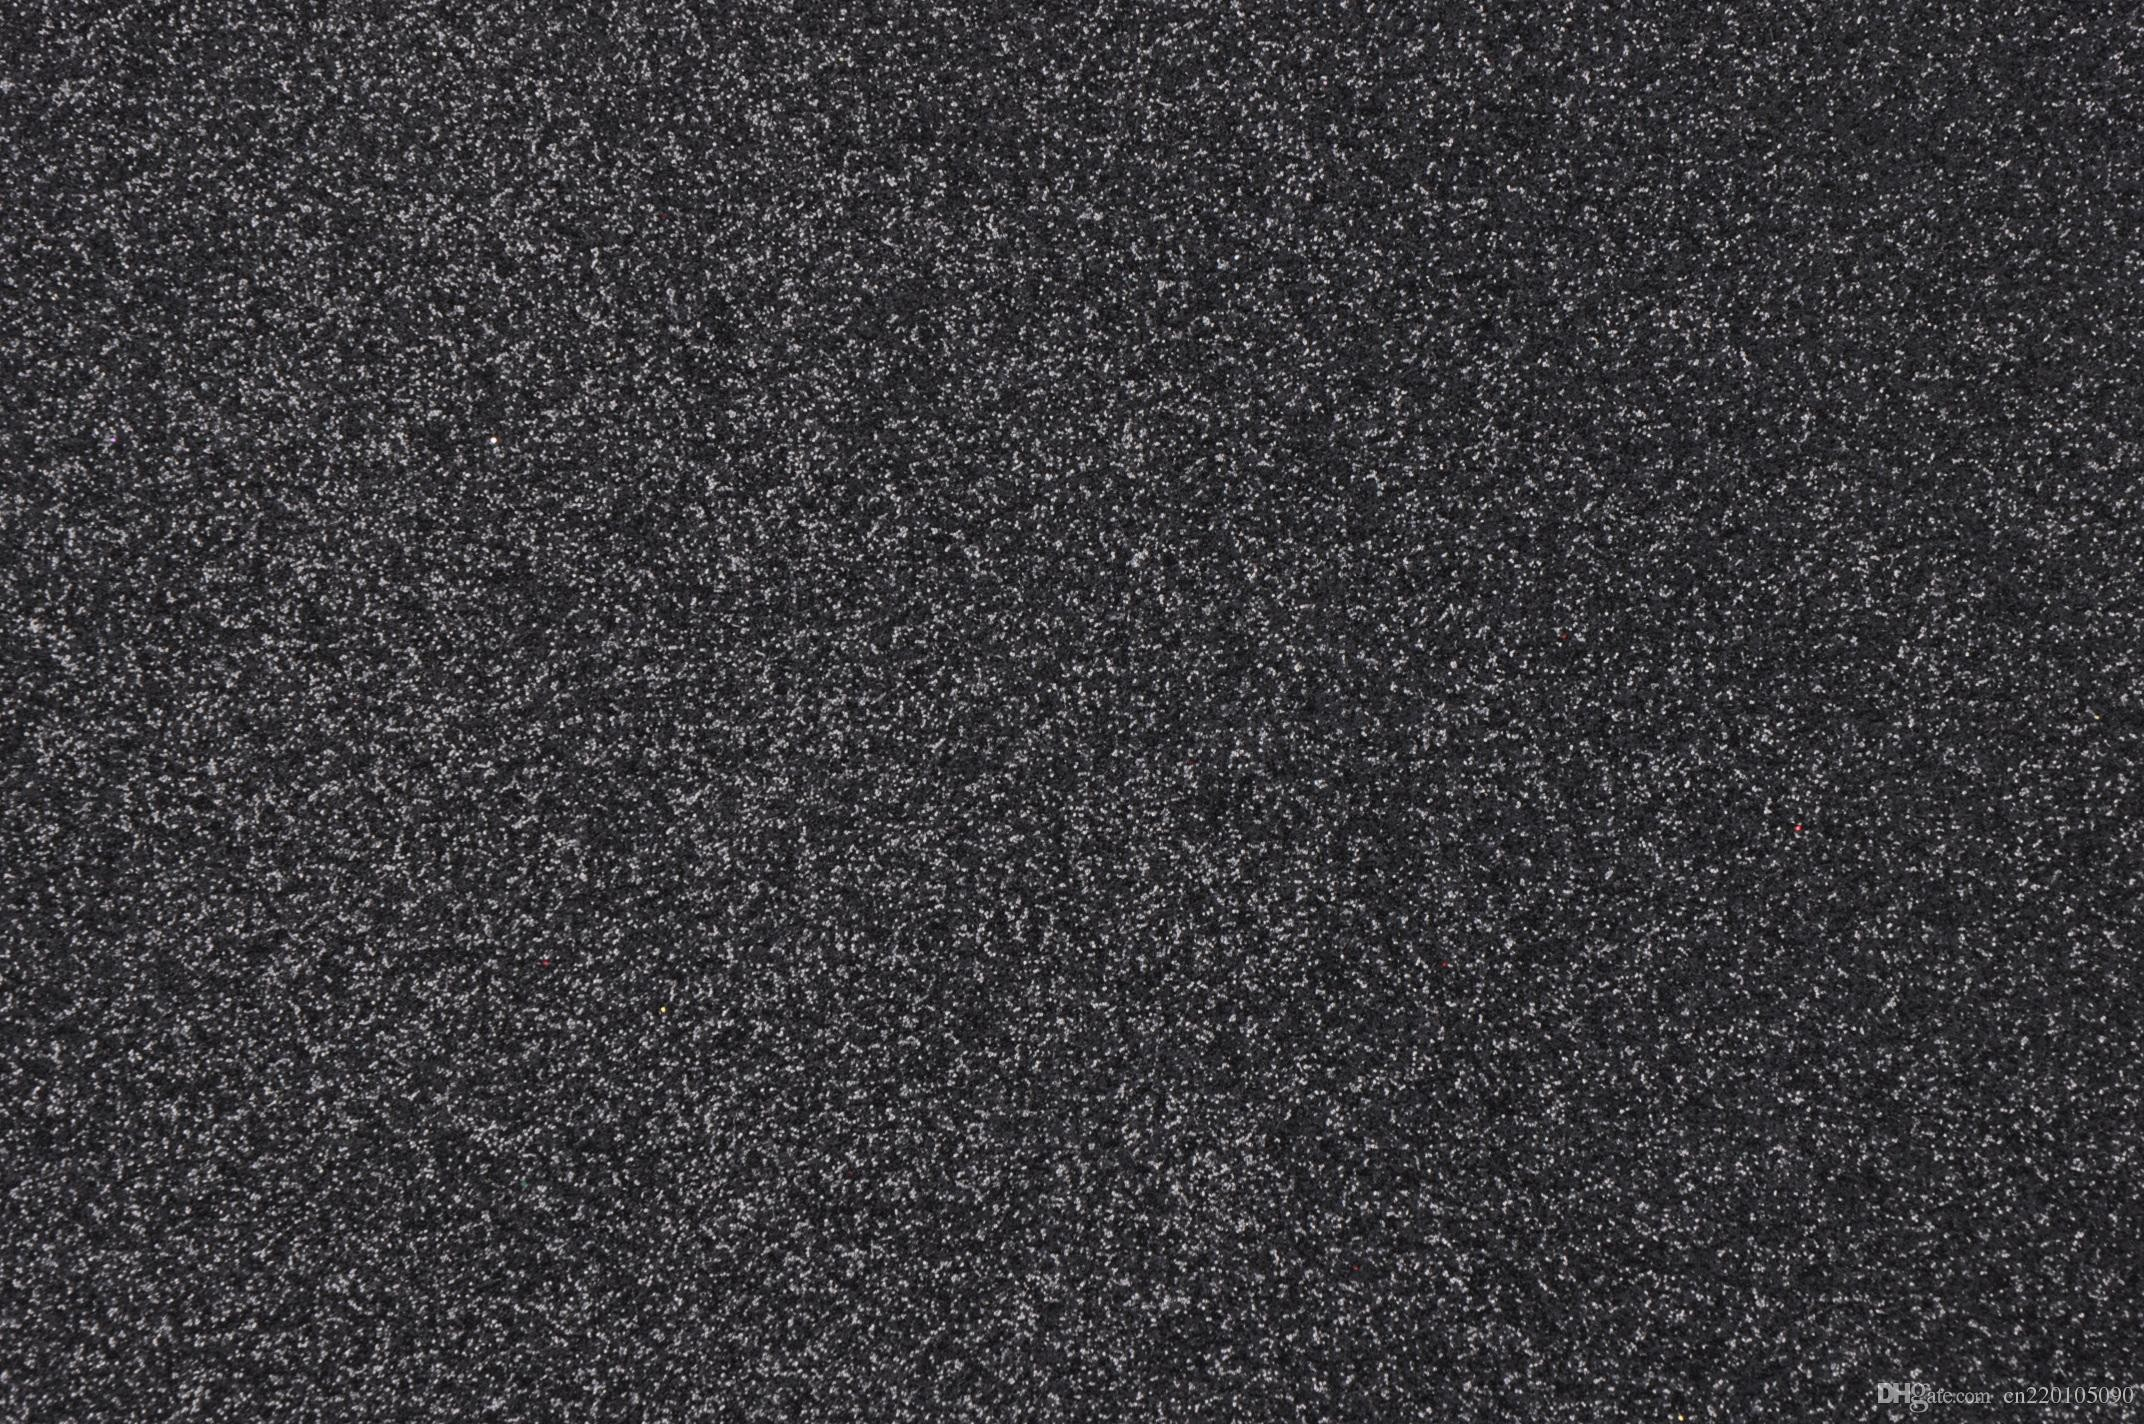 Res: 2144x1424, Jc Pack Eco Friendly Gunmetal Glitter Fabric ,Popular Glitter Fabric ,Teal Blue Glitter Fabric Glitter Wallpaper 15m/Roll Wallpapers Wallpaper Wallpapers ...